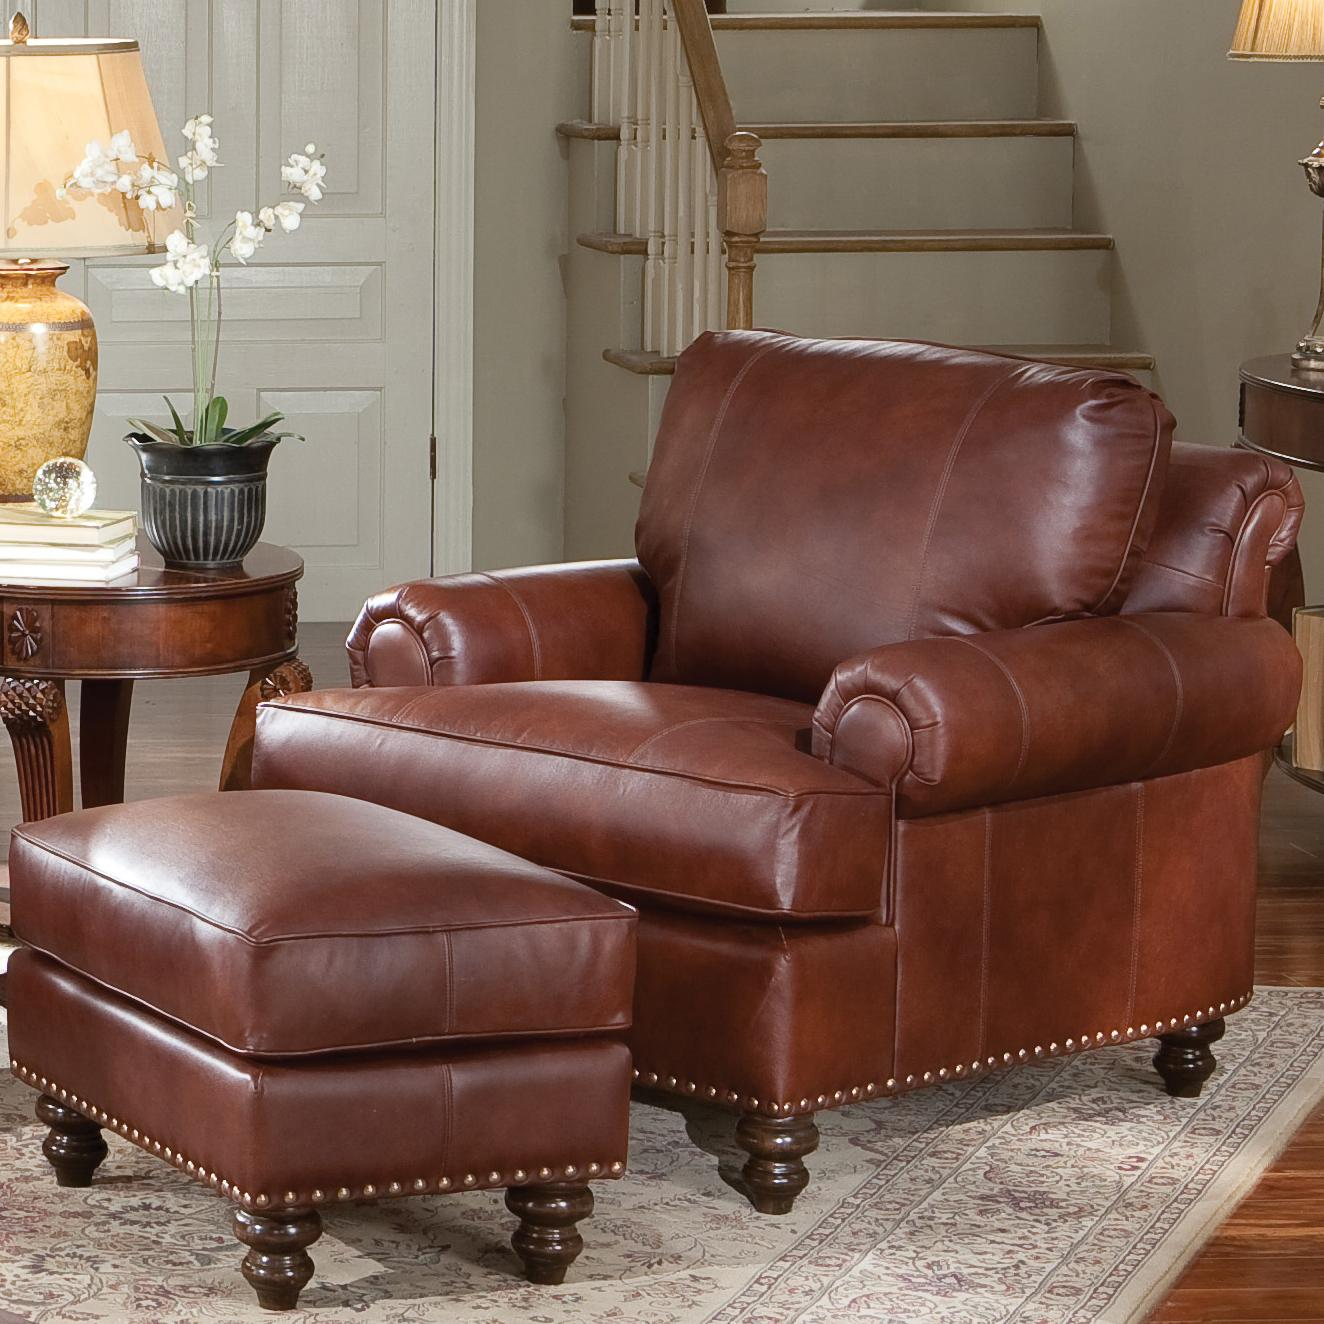 living room chair with ottoman empire modern executive furniture alluring leather and for cozy